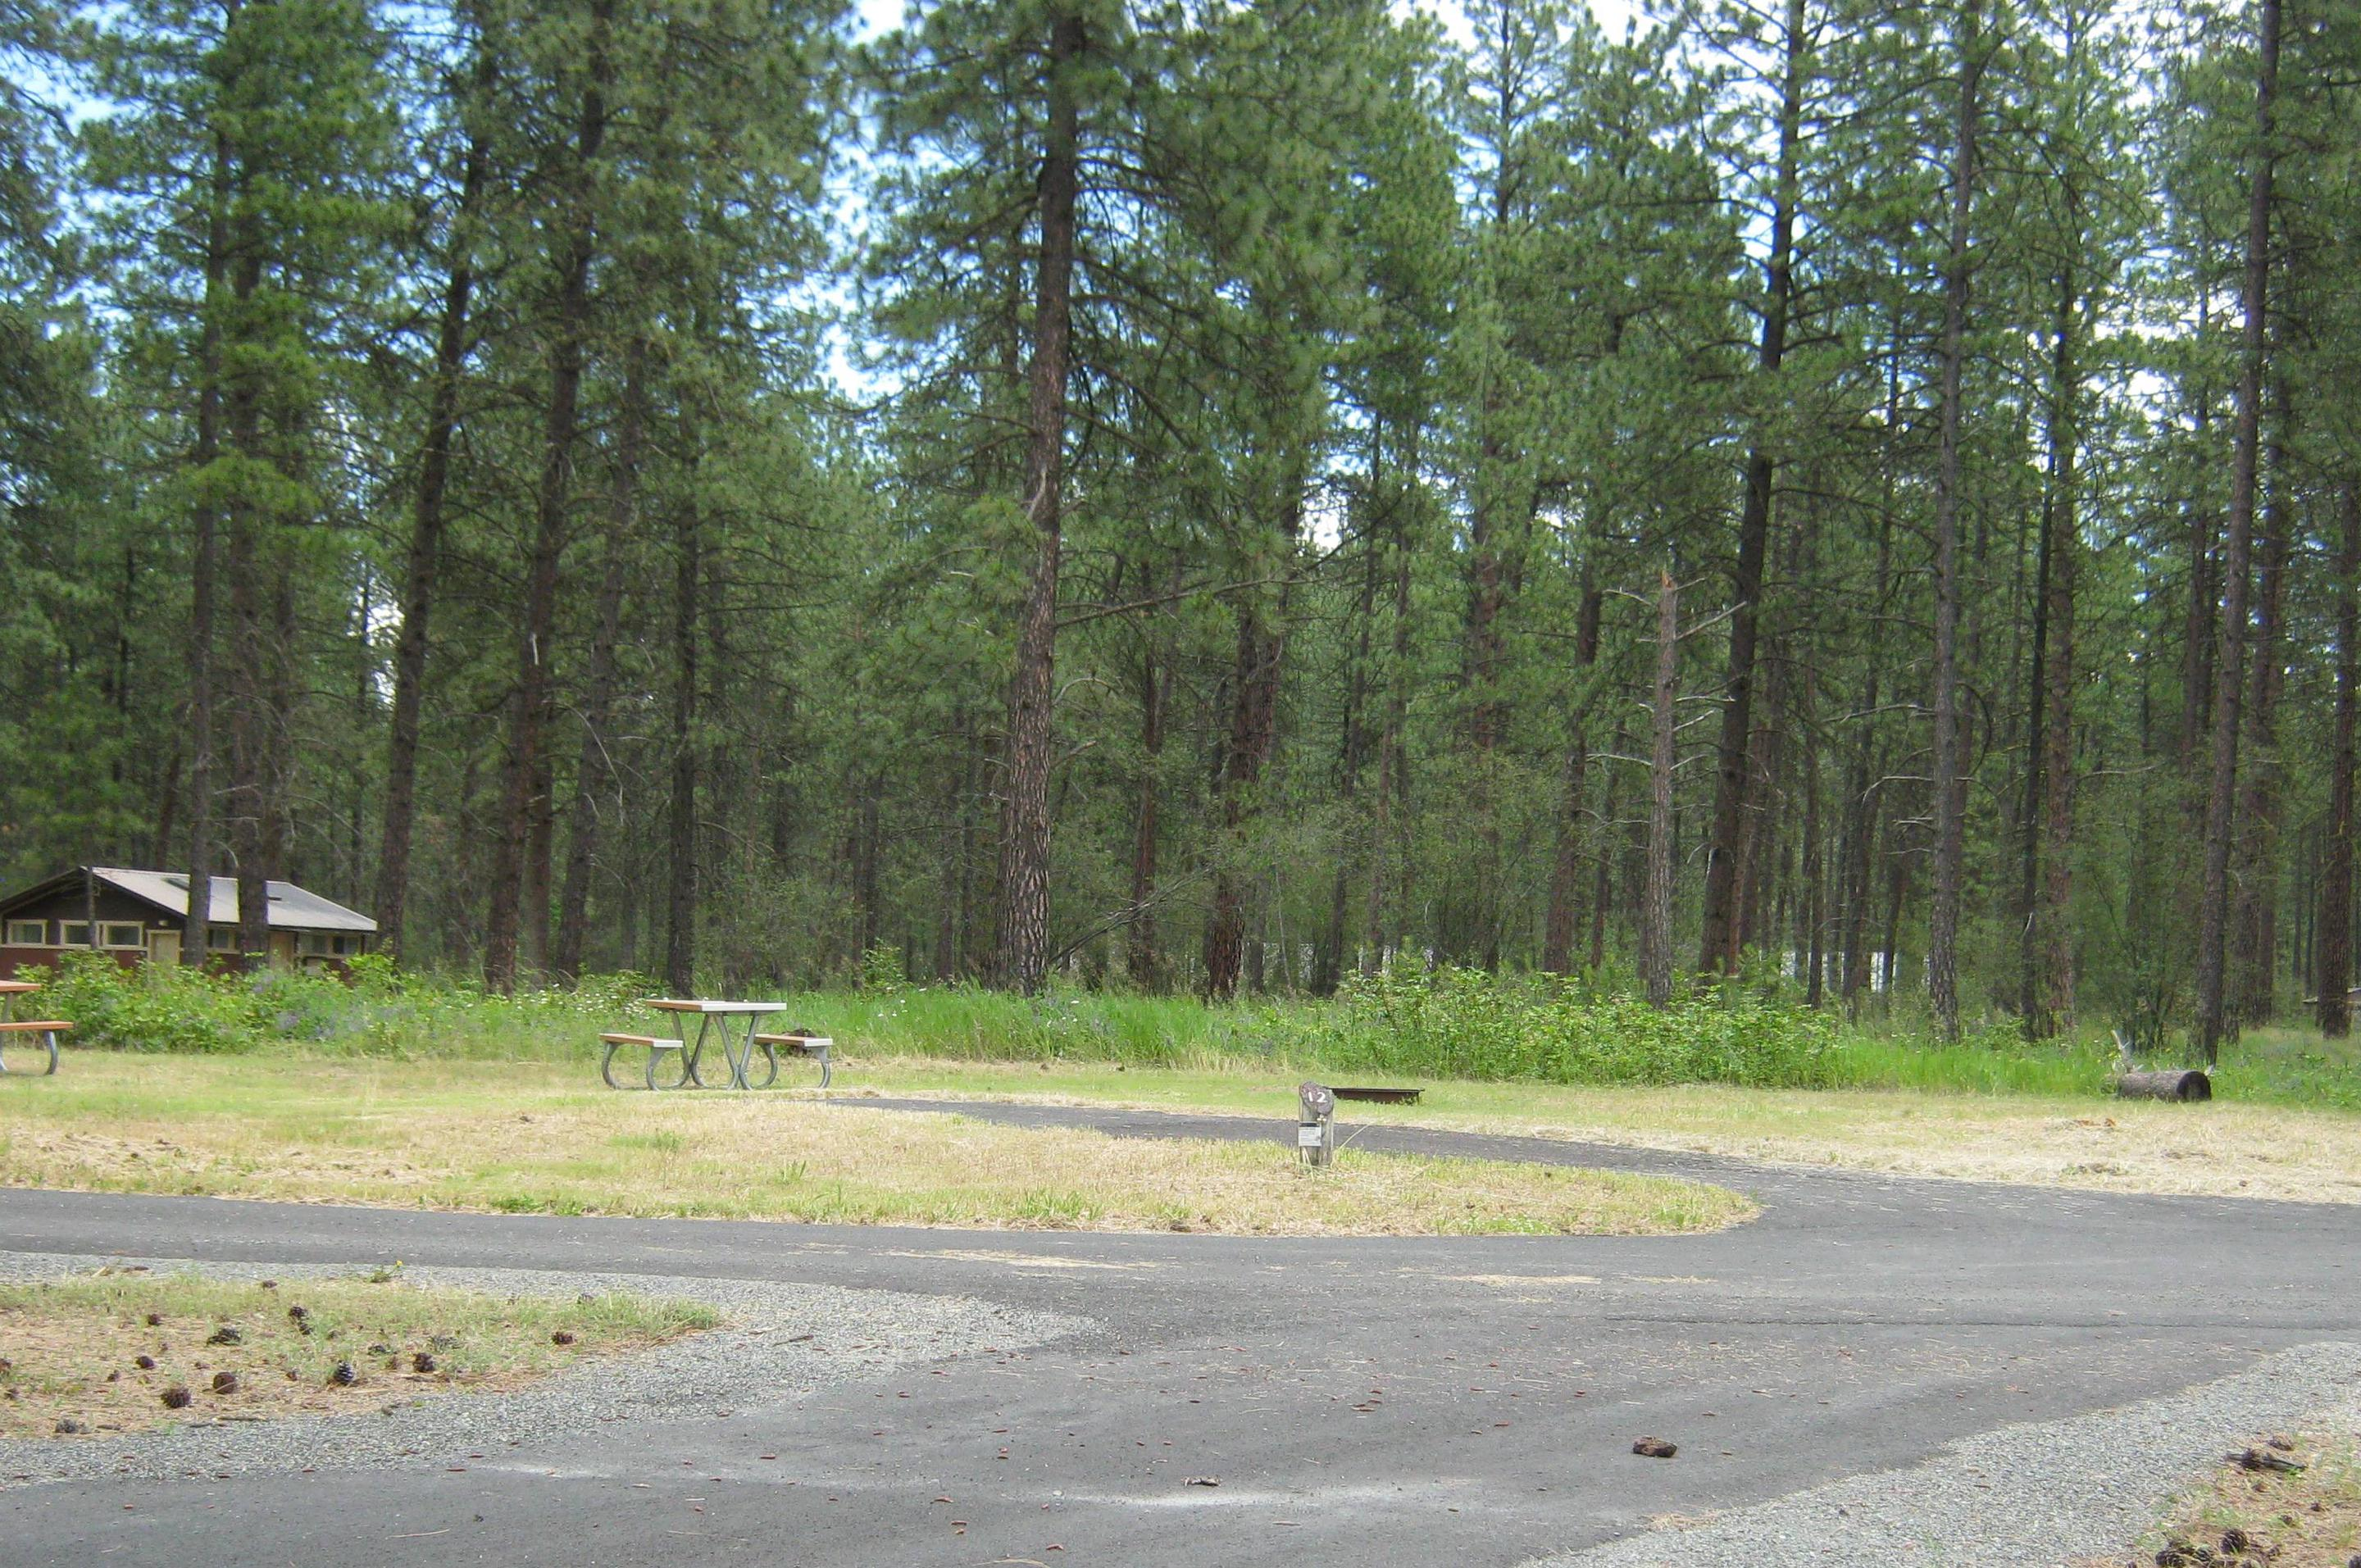 Site 12, Back inSite 12, Back in, Trees and comfort station in background